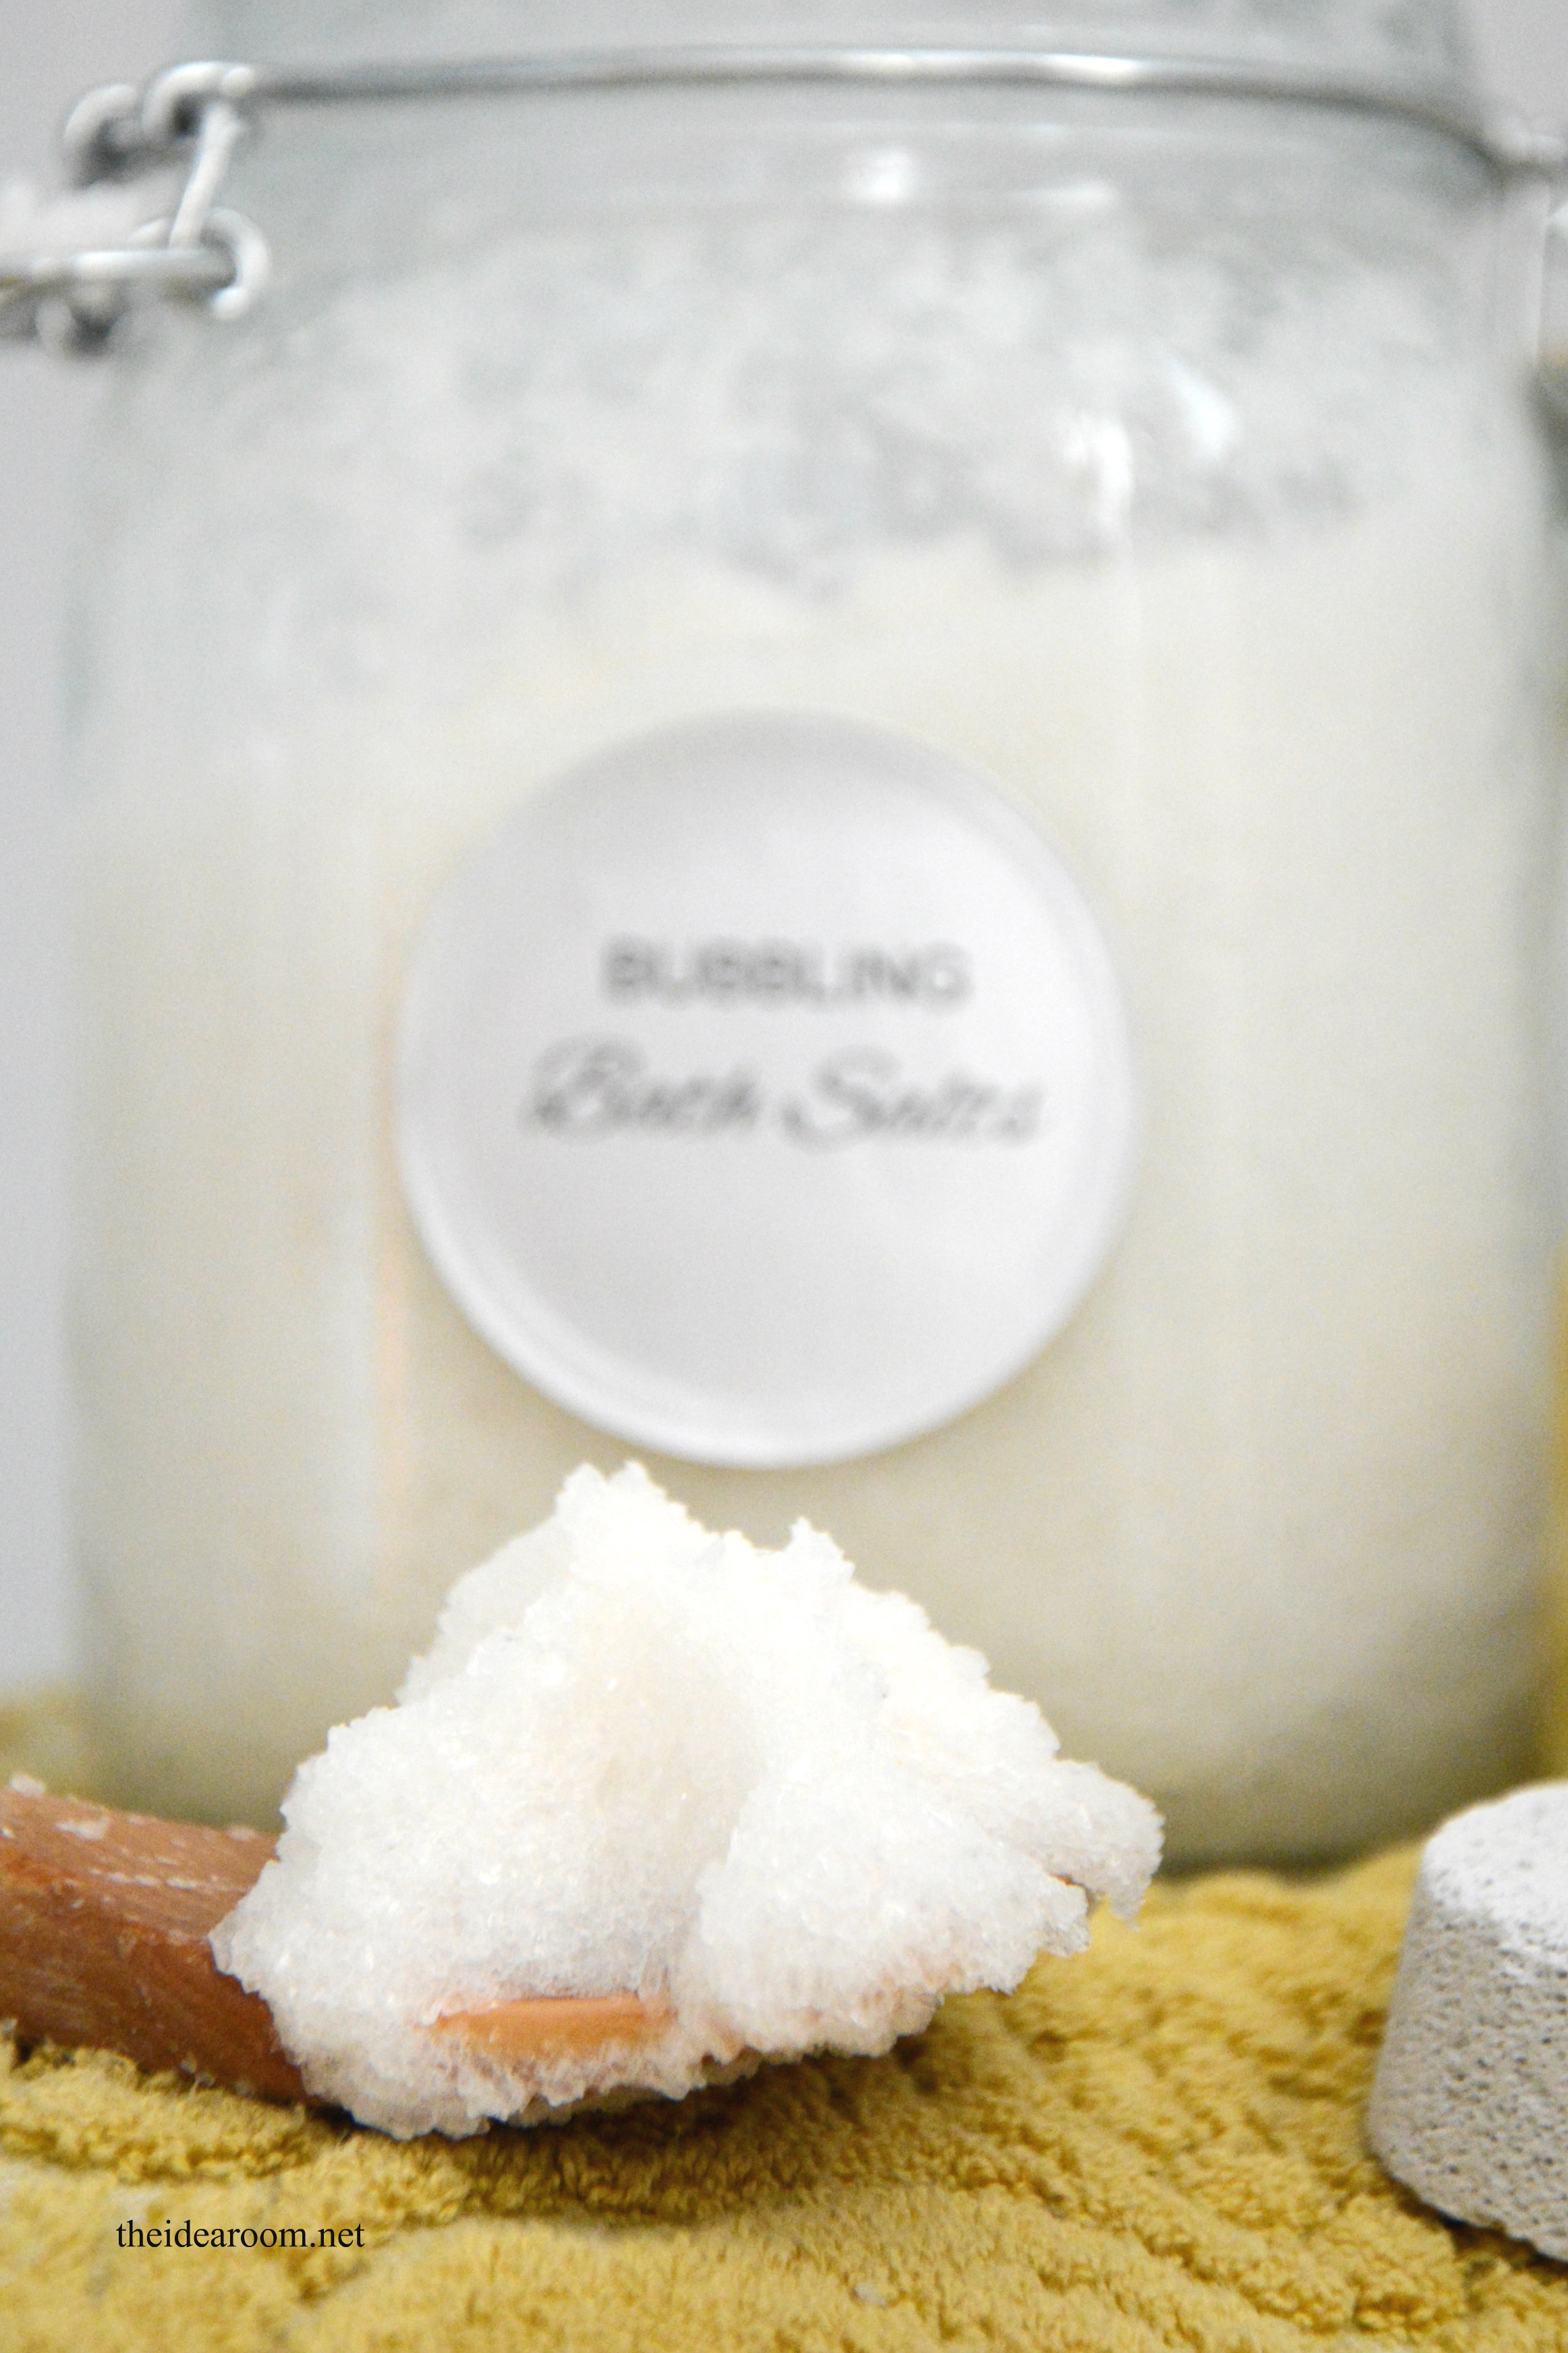 """bath salts Bath salts or designer cathinones (synthetic stimulants) overview synthetic stimulants that are marketed as """"bath salts"""" are often found in a number of retail products."""